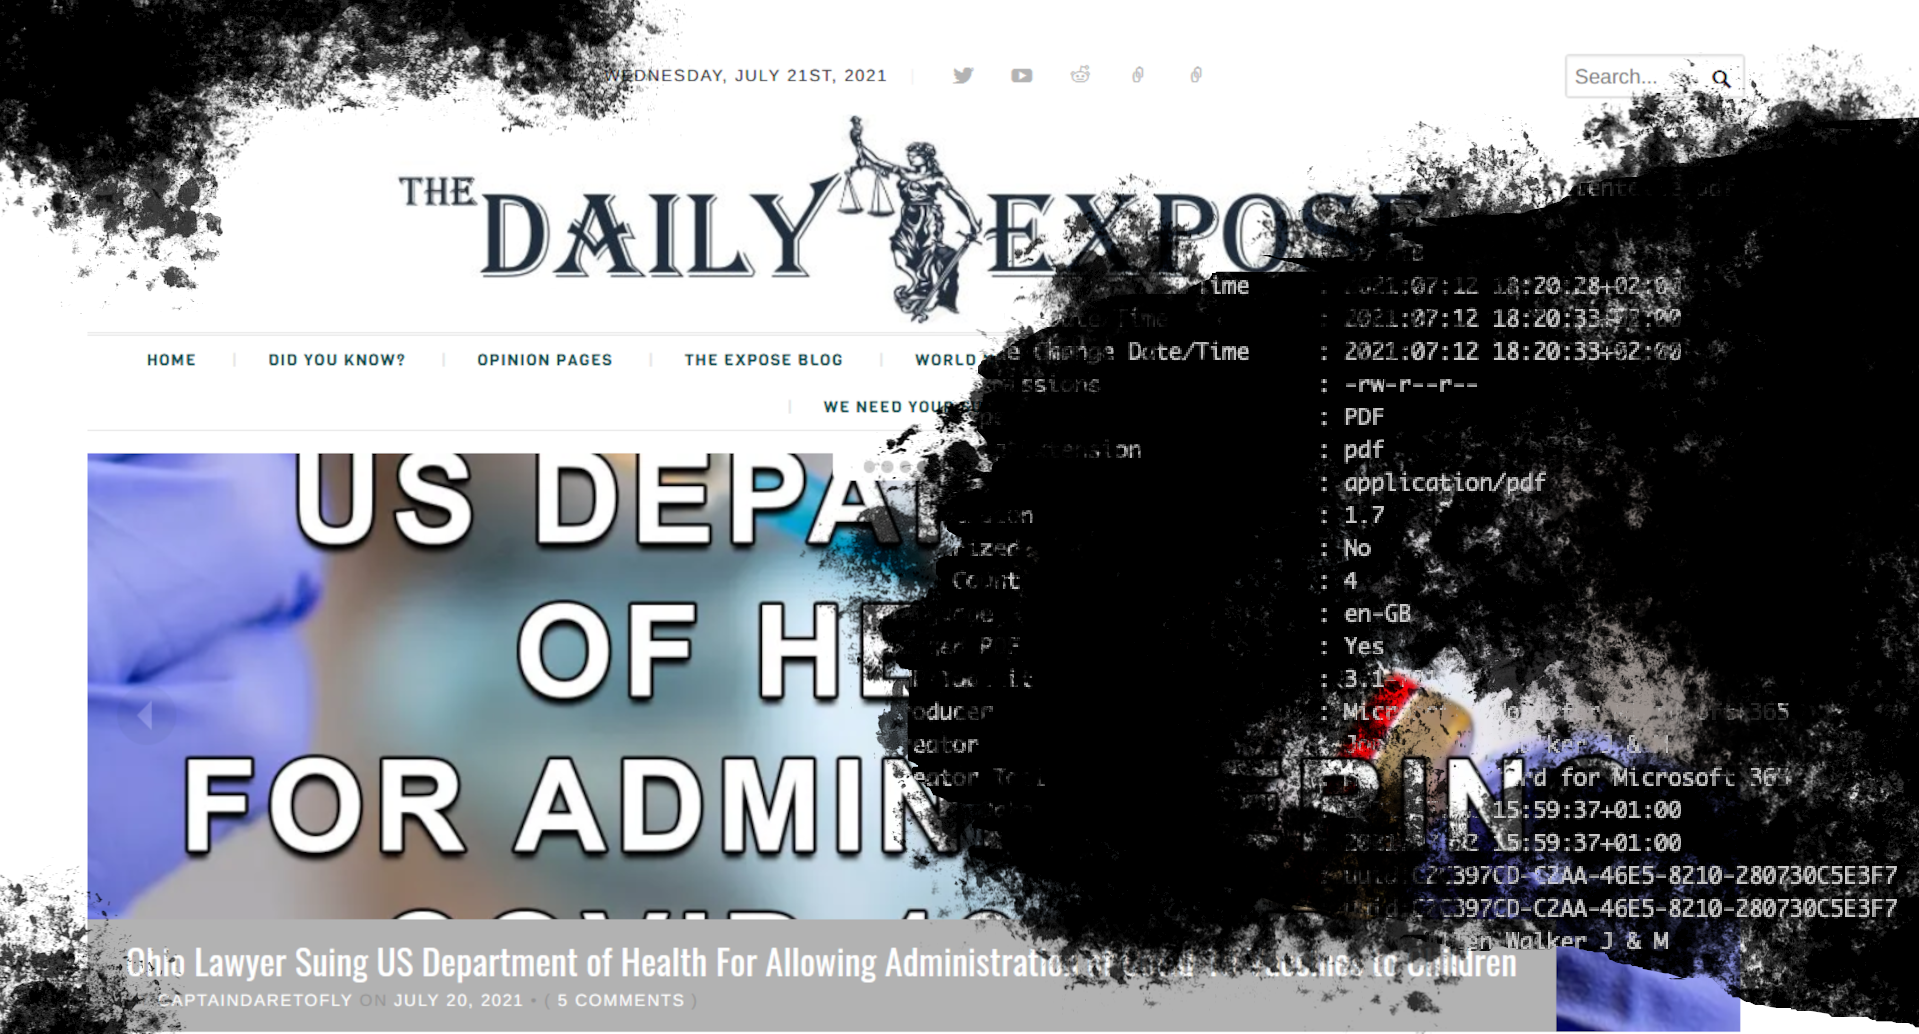 EXCLUSIVE: Actors Behind UK Misinformation Site The Daily Expose Revealed